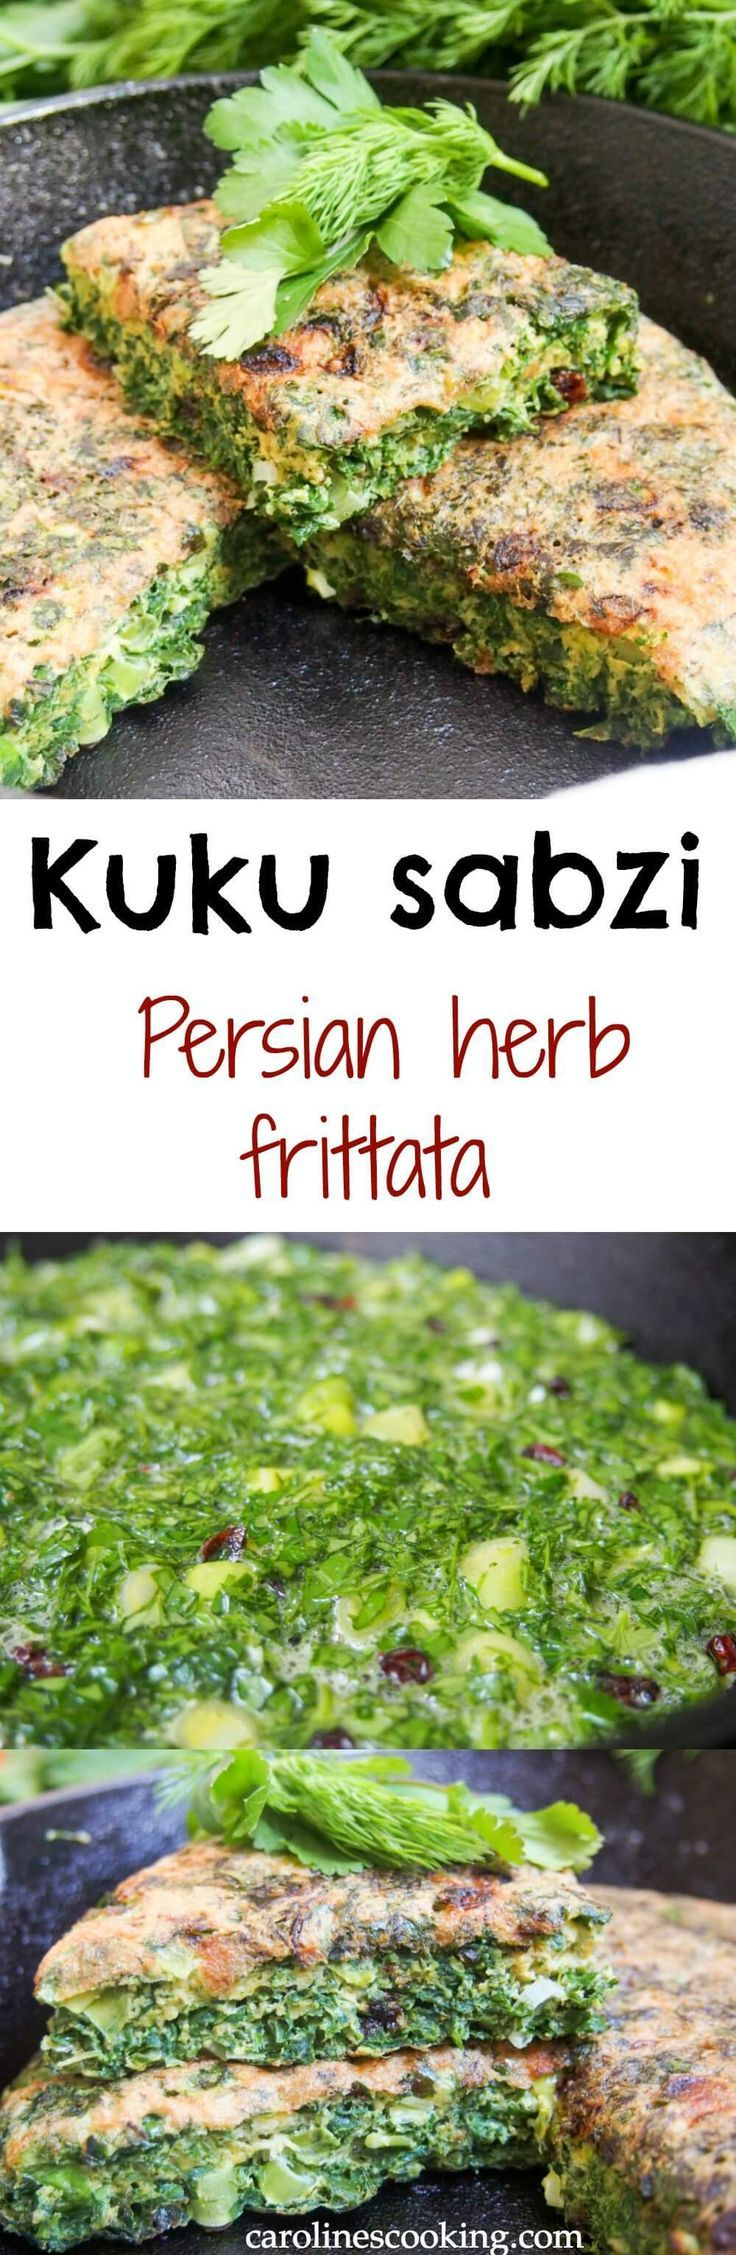 This Persian herb frittata (kuku sabzi) is bright and fresh in both color and flavor. While traditionally for Nowruz, it would also be great for a picnic, appetizer or brunch. #SundaySupper